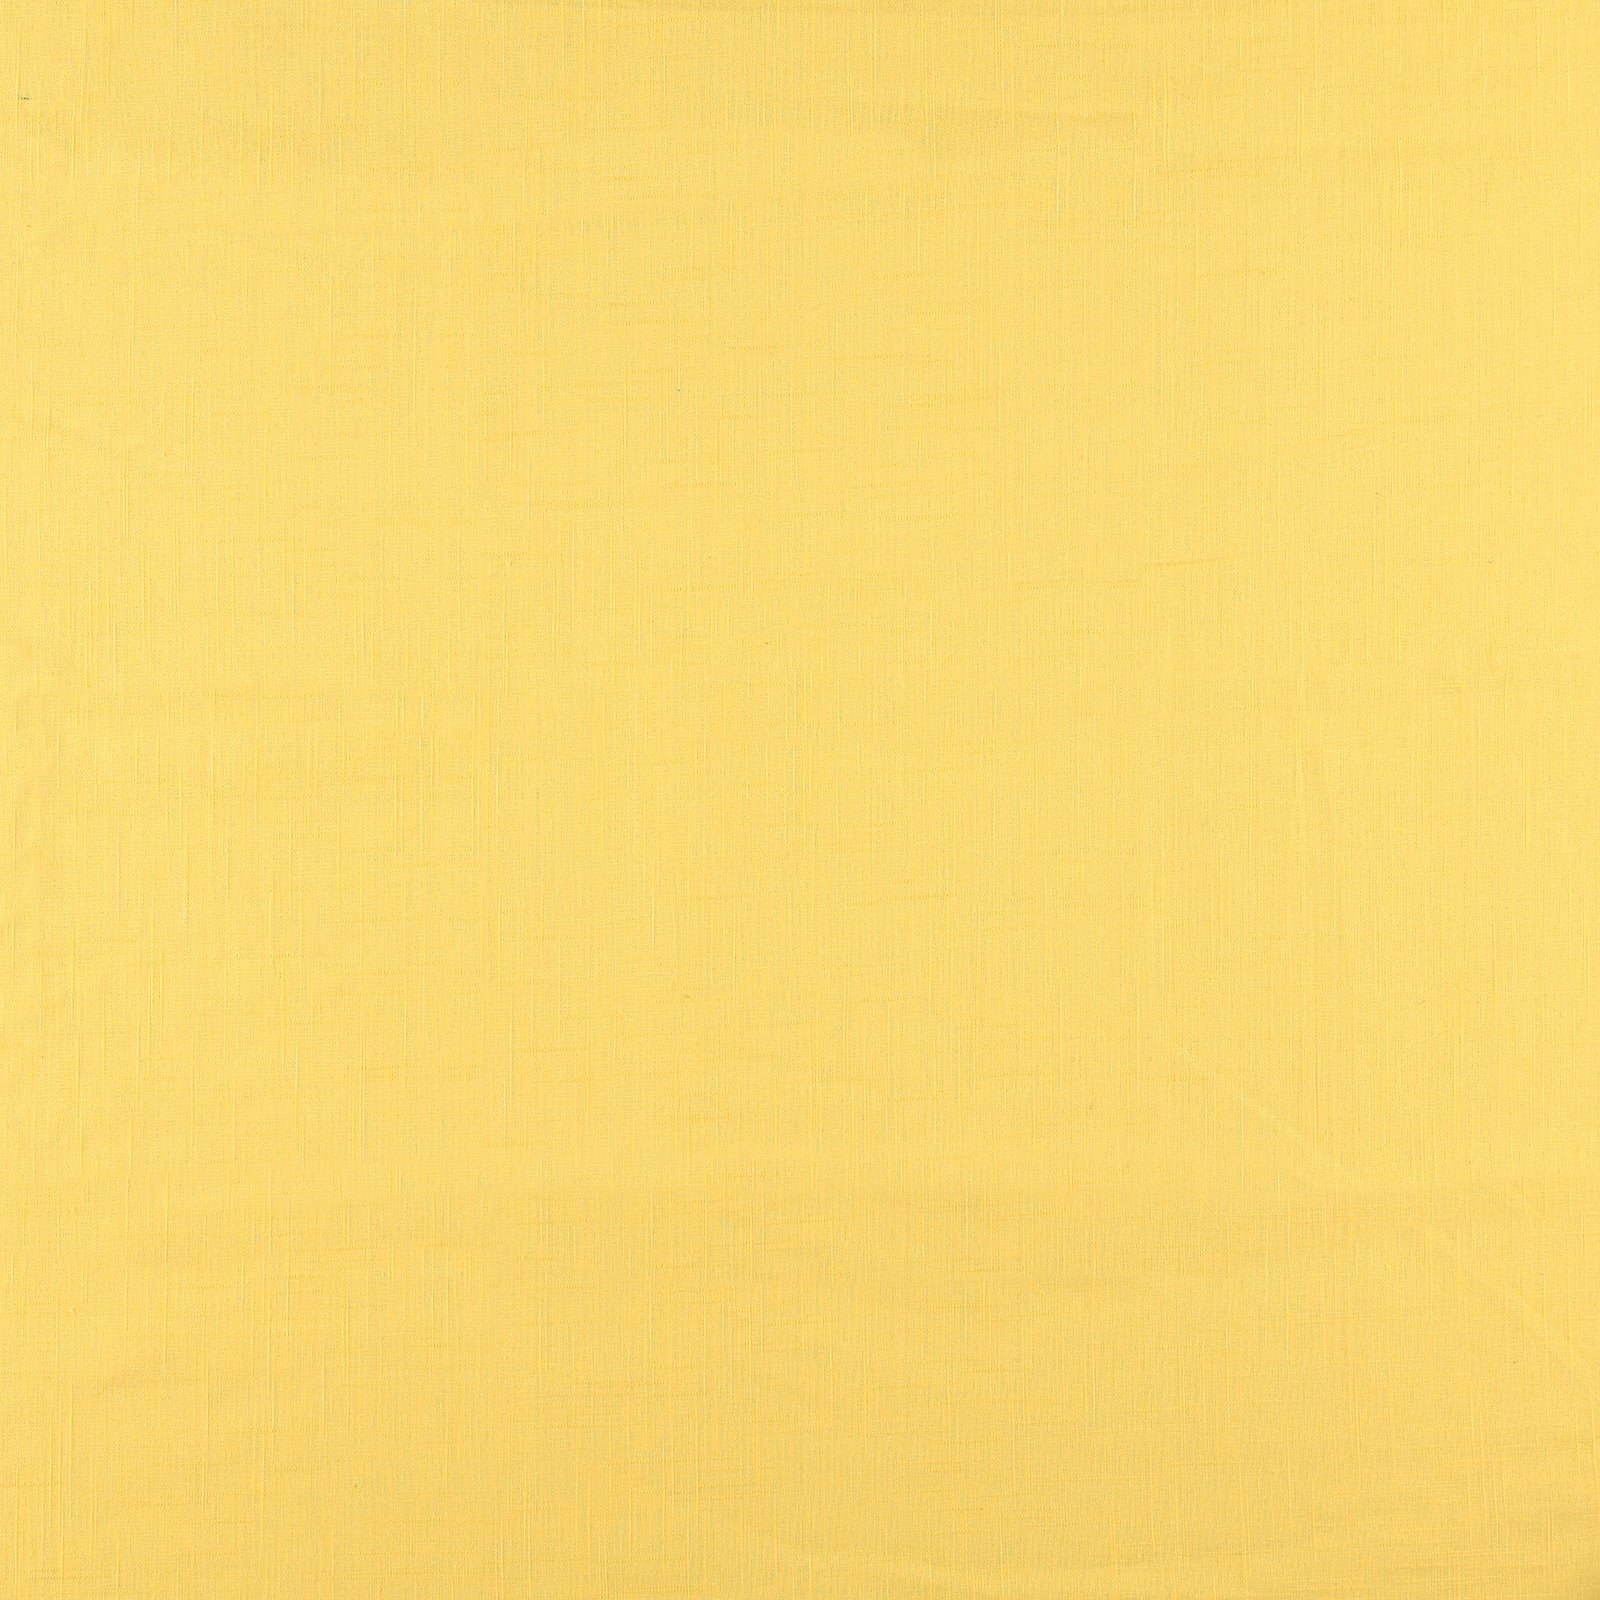 Coarse linen/viscose light yellow 852310_pack_solid